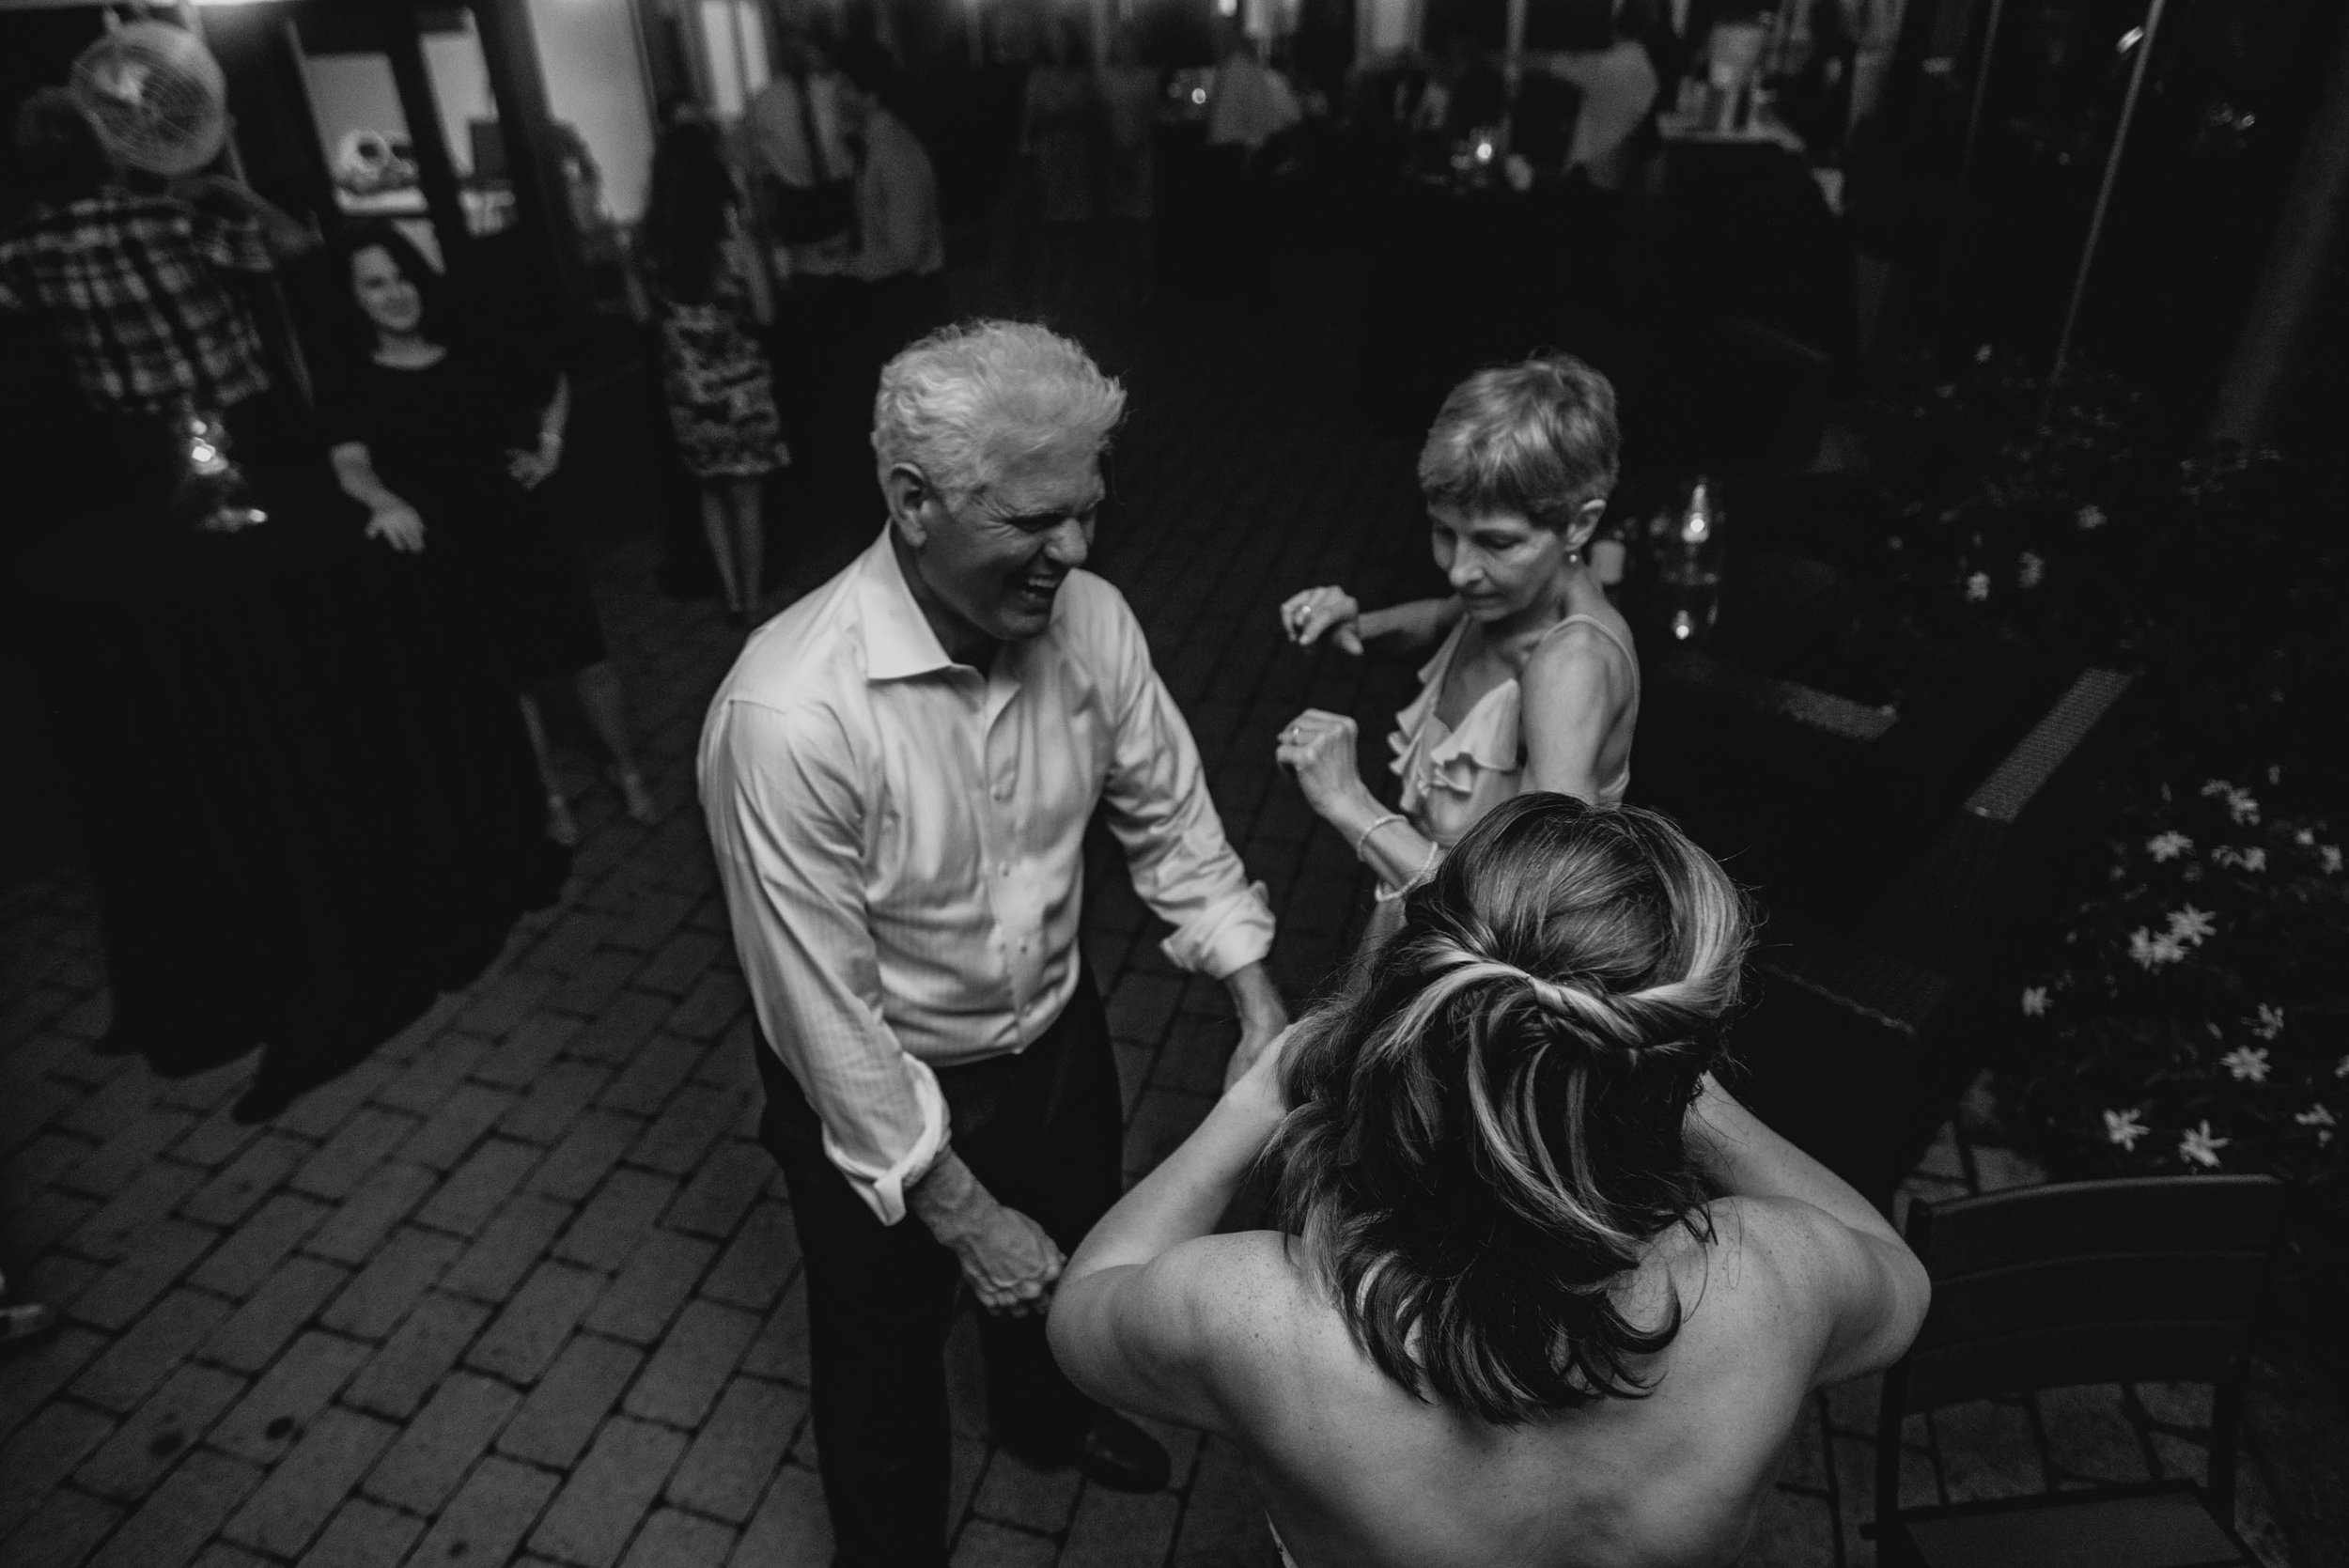 brides parent dancing with bride during reception at Jiddi Space and Courtyard Wedding at Sitti Restaurant